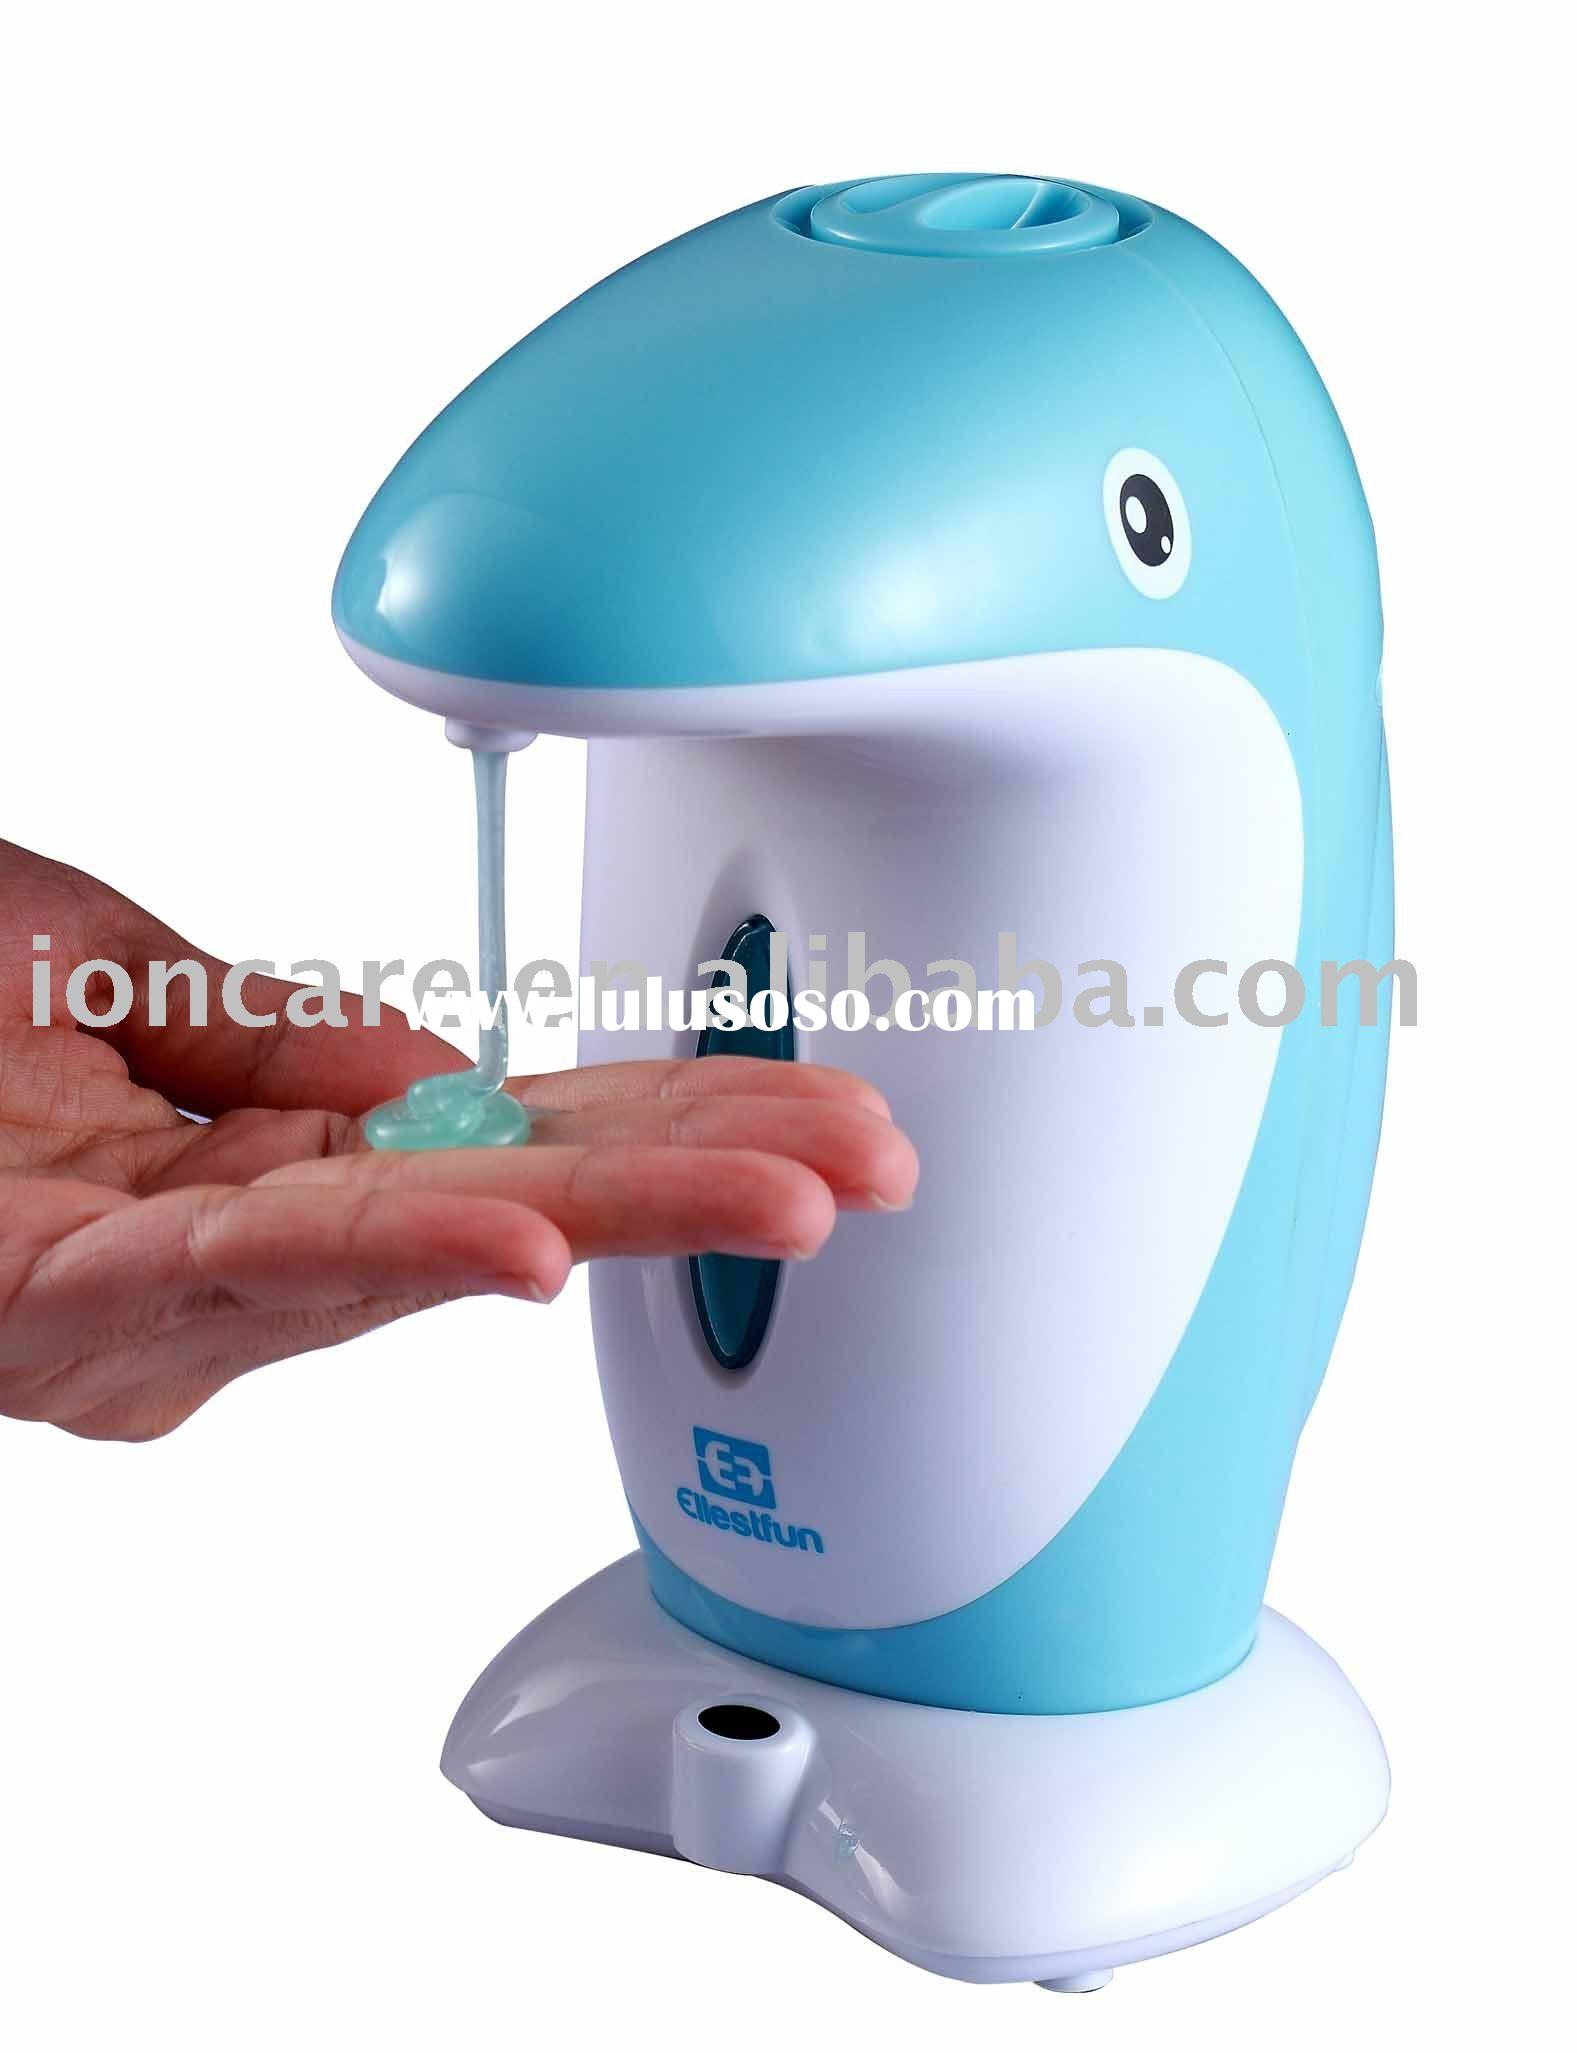 2011 Newest CUTIESoap No-Touch Hand Wash Soap Pump with Handsfree Automatic Motion Sensor Soap Dispe